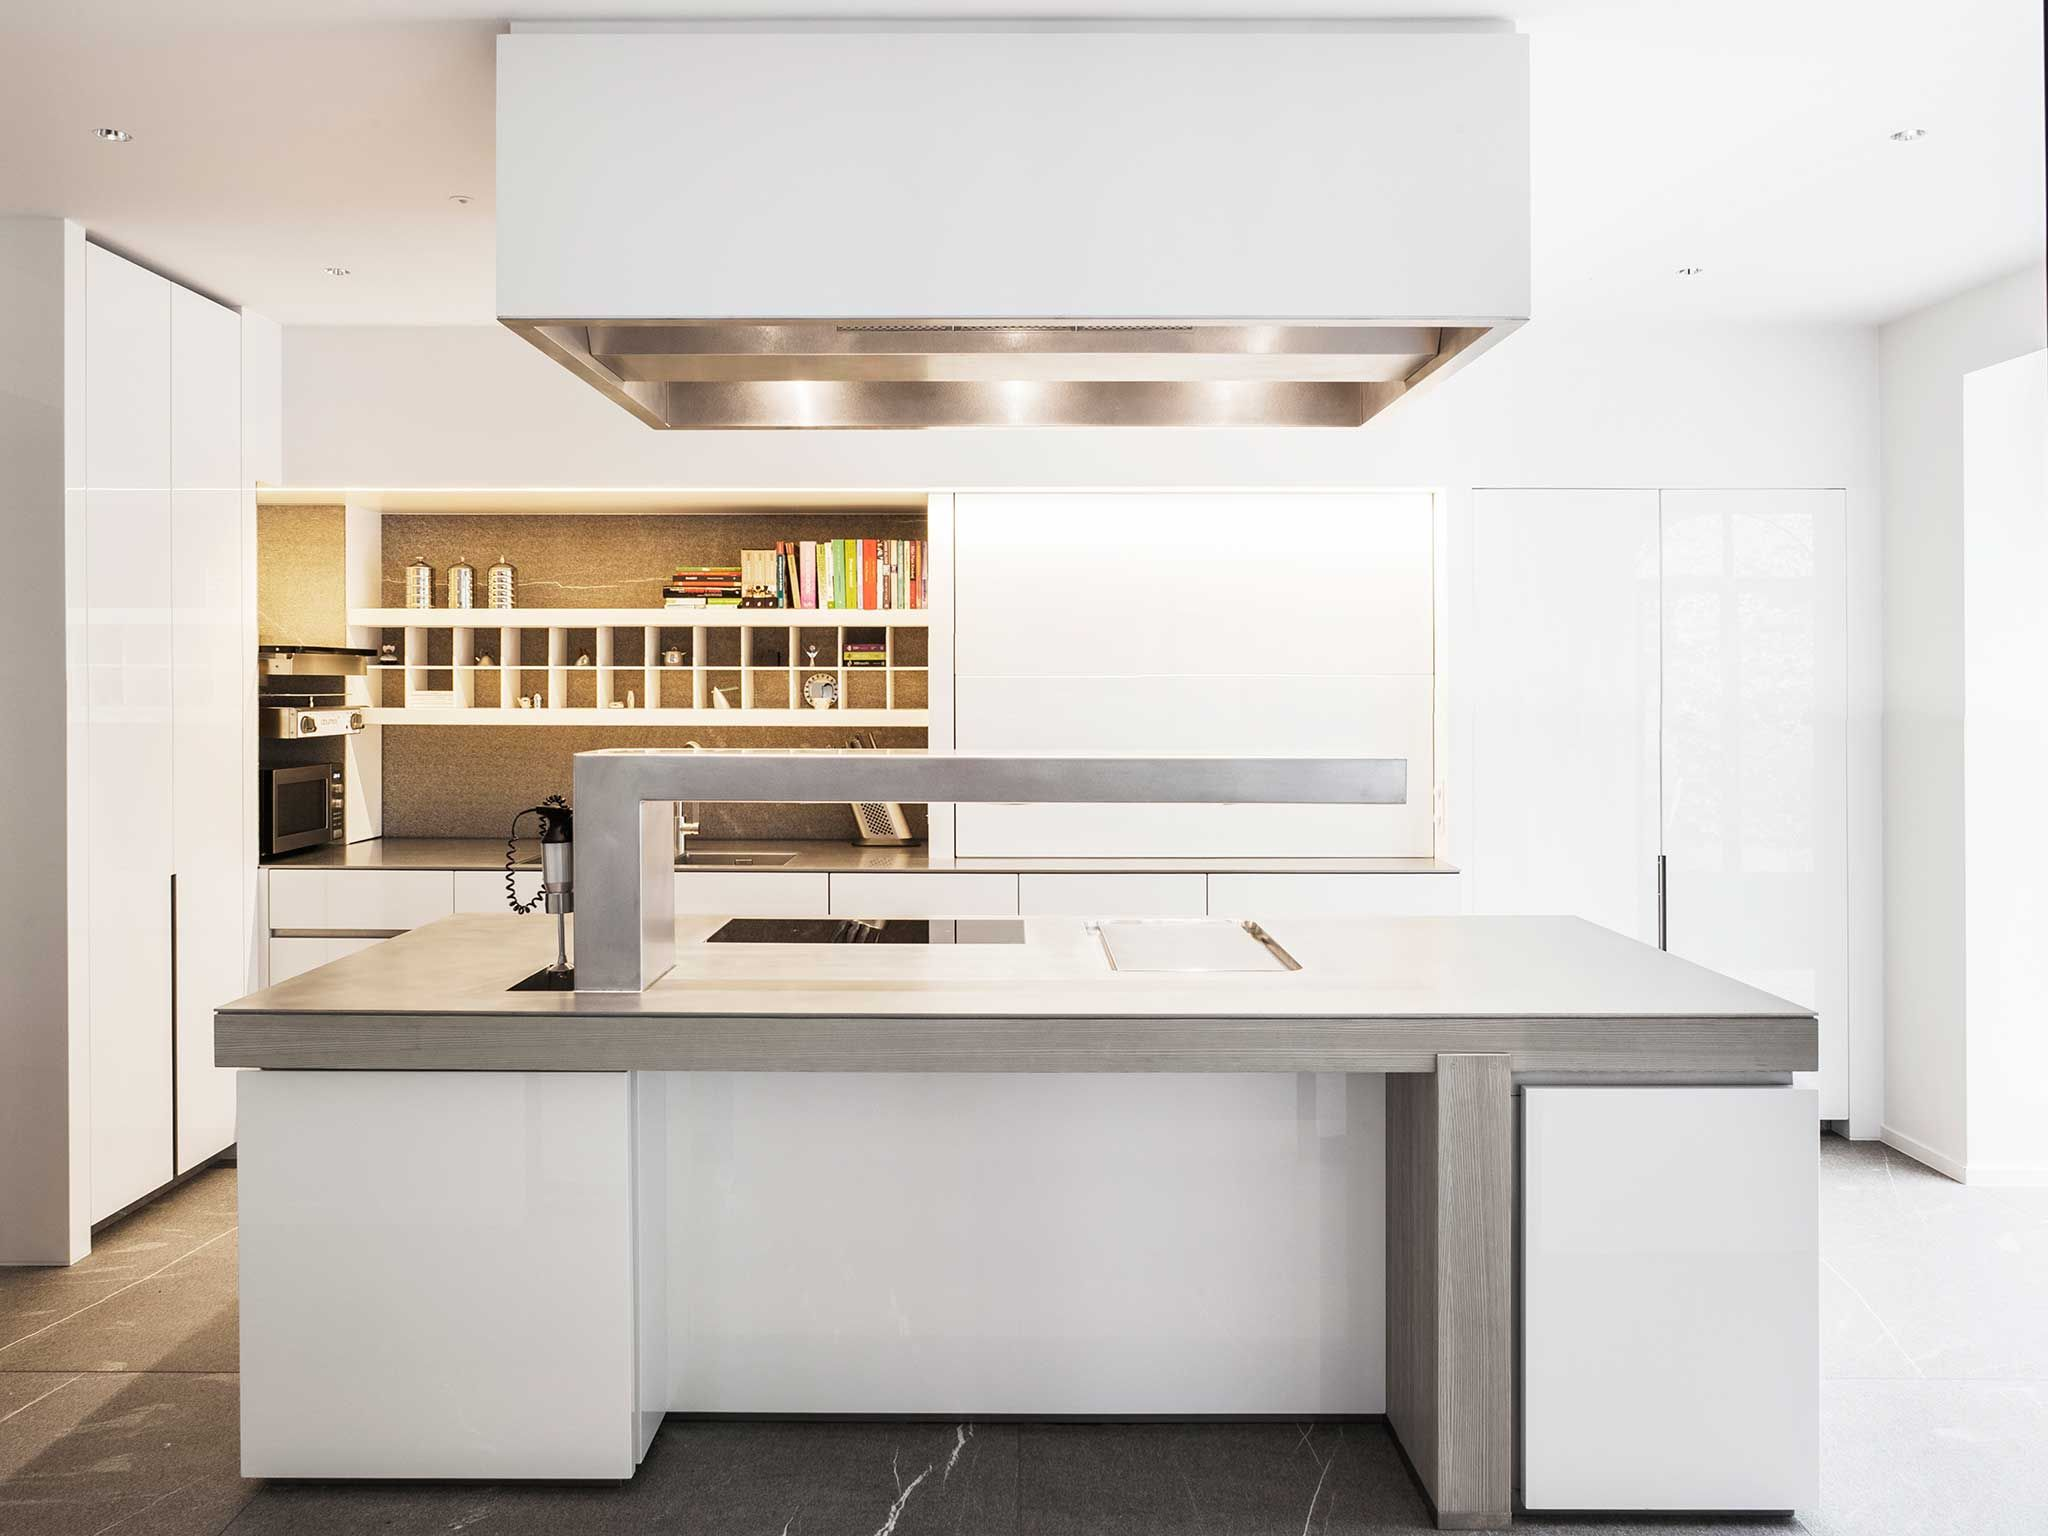 Obumex conceptkitchen sergio herman chef at home for Professional kitchen design